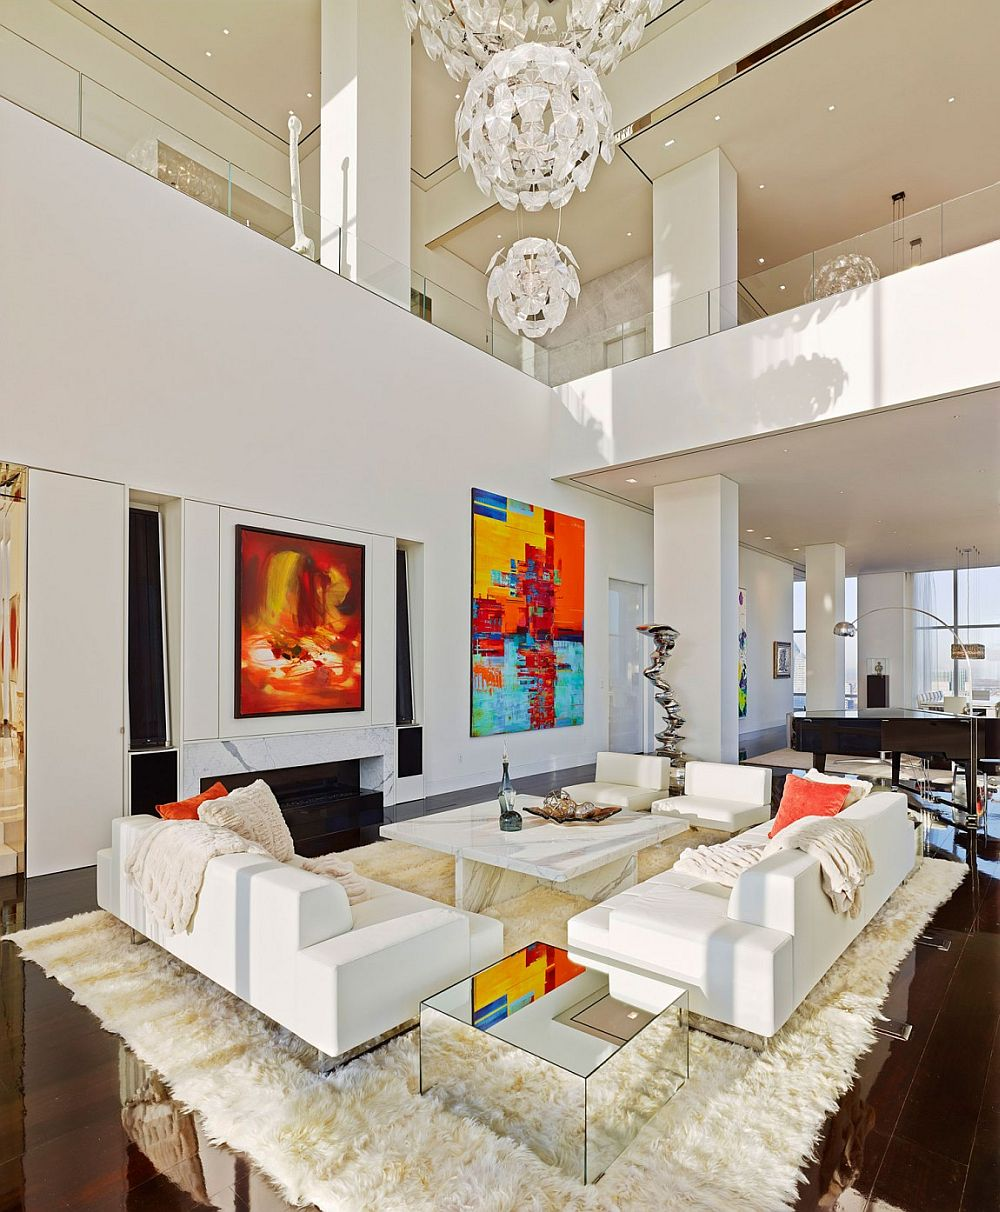 Luxury Apartment: Breathtaking New York City Penthouse Leaves You Awestruck